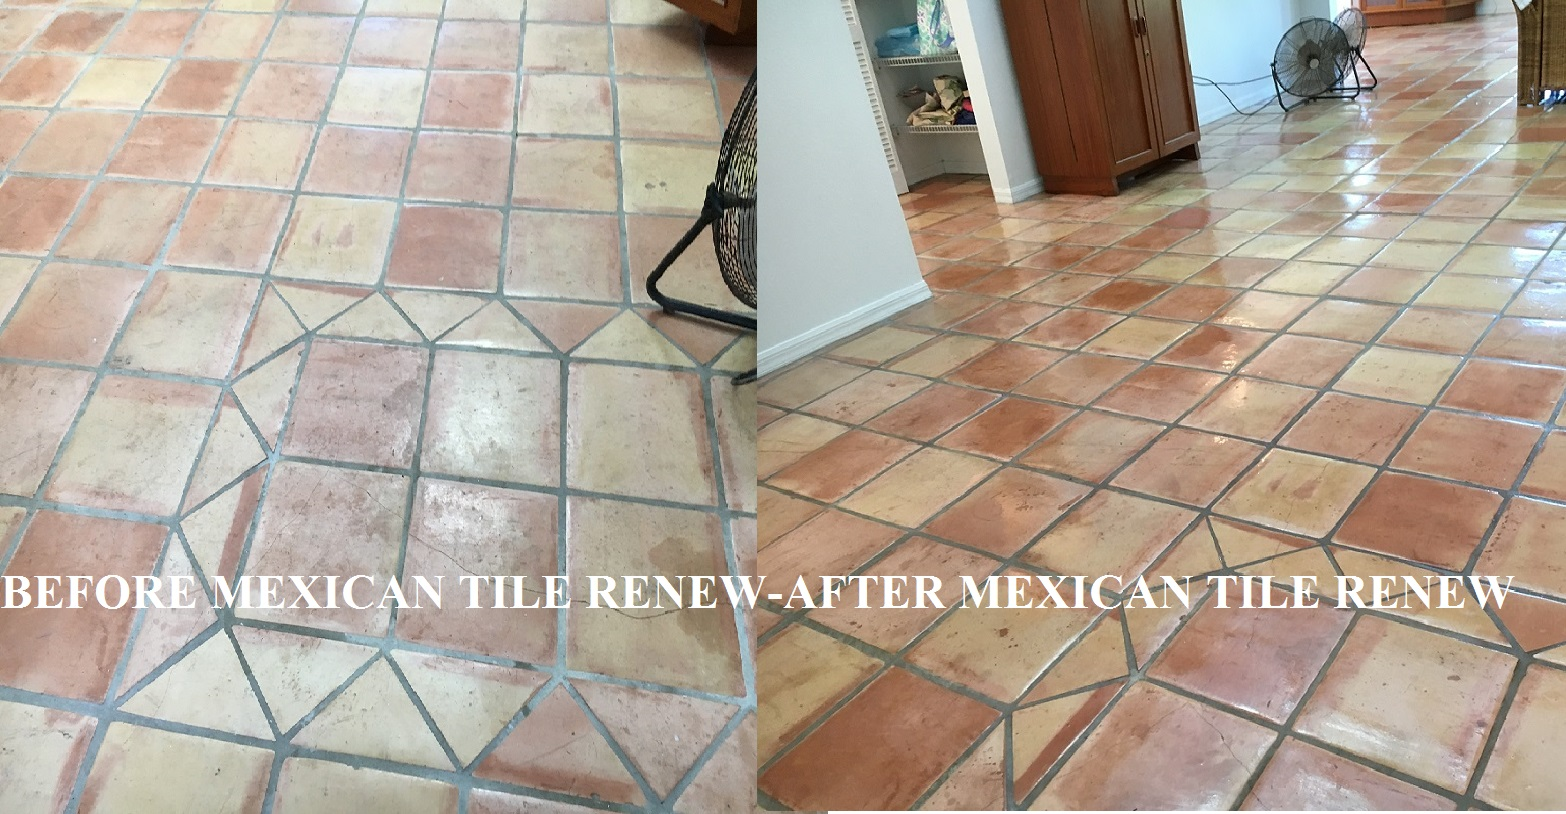 Mexican tile renew sarasota fl cleaning sealing mexican tile mexican tile renew fort myers sarasota st pete fl mexican tile renew project in north port florida call 941 926 7444 dailygadgetfo Image collections